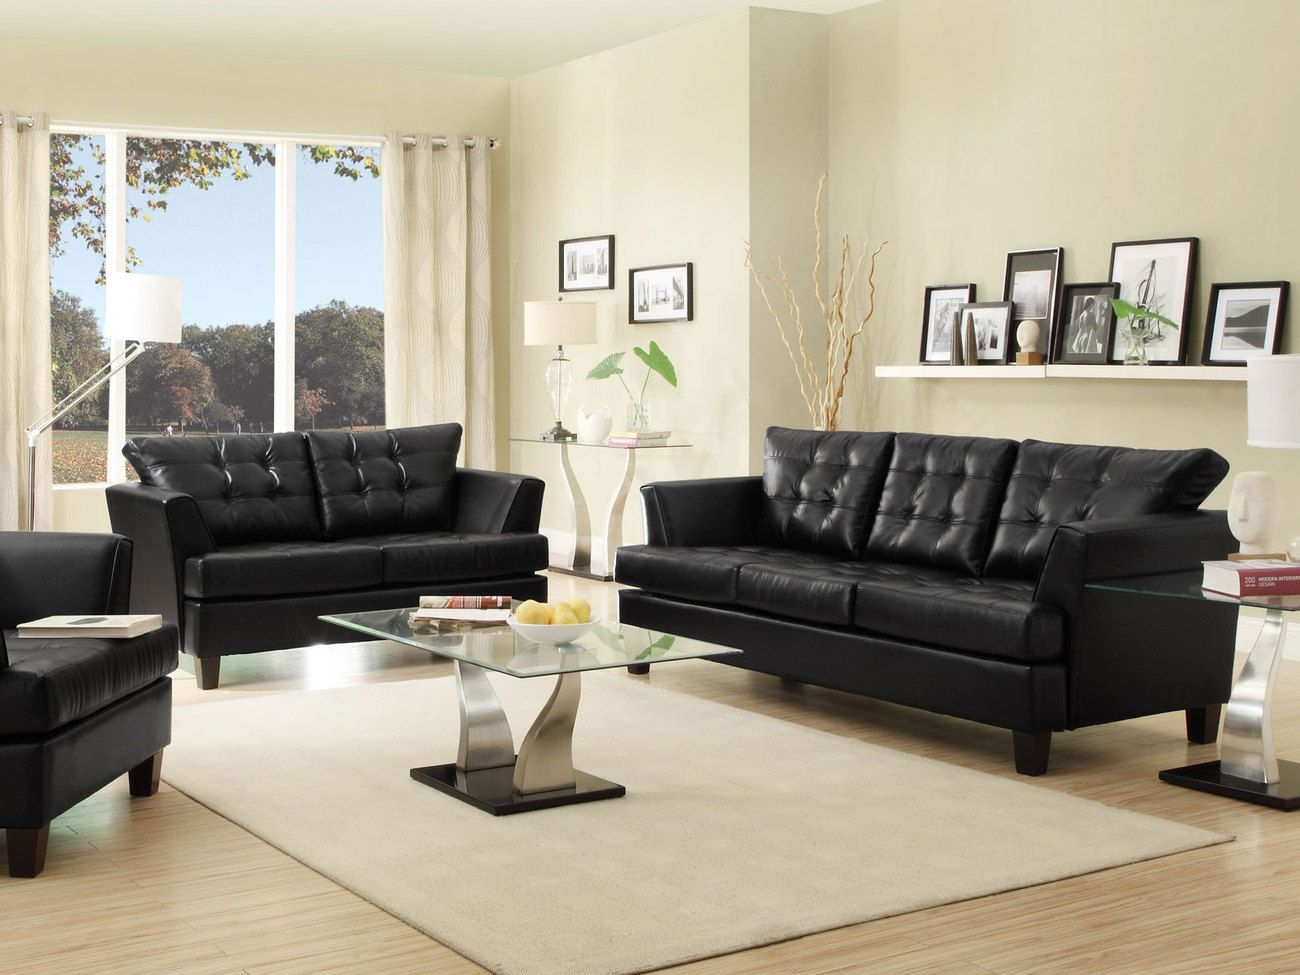 Living Room Design With Black Leather Sofa Impressive Living Room Decor With Black Leather Couches  Httptmidb Decorating Design